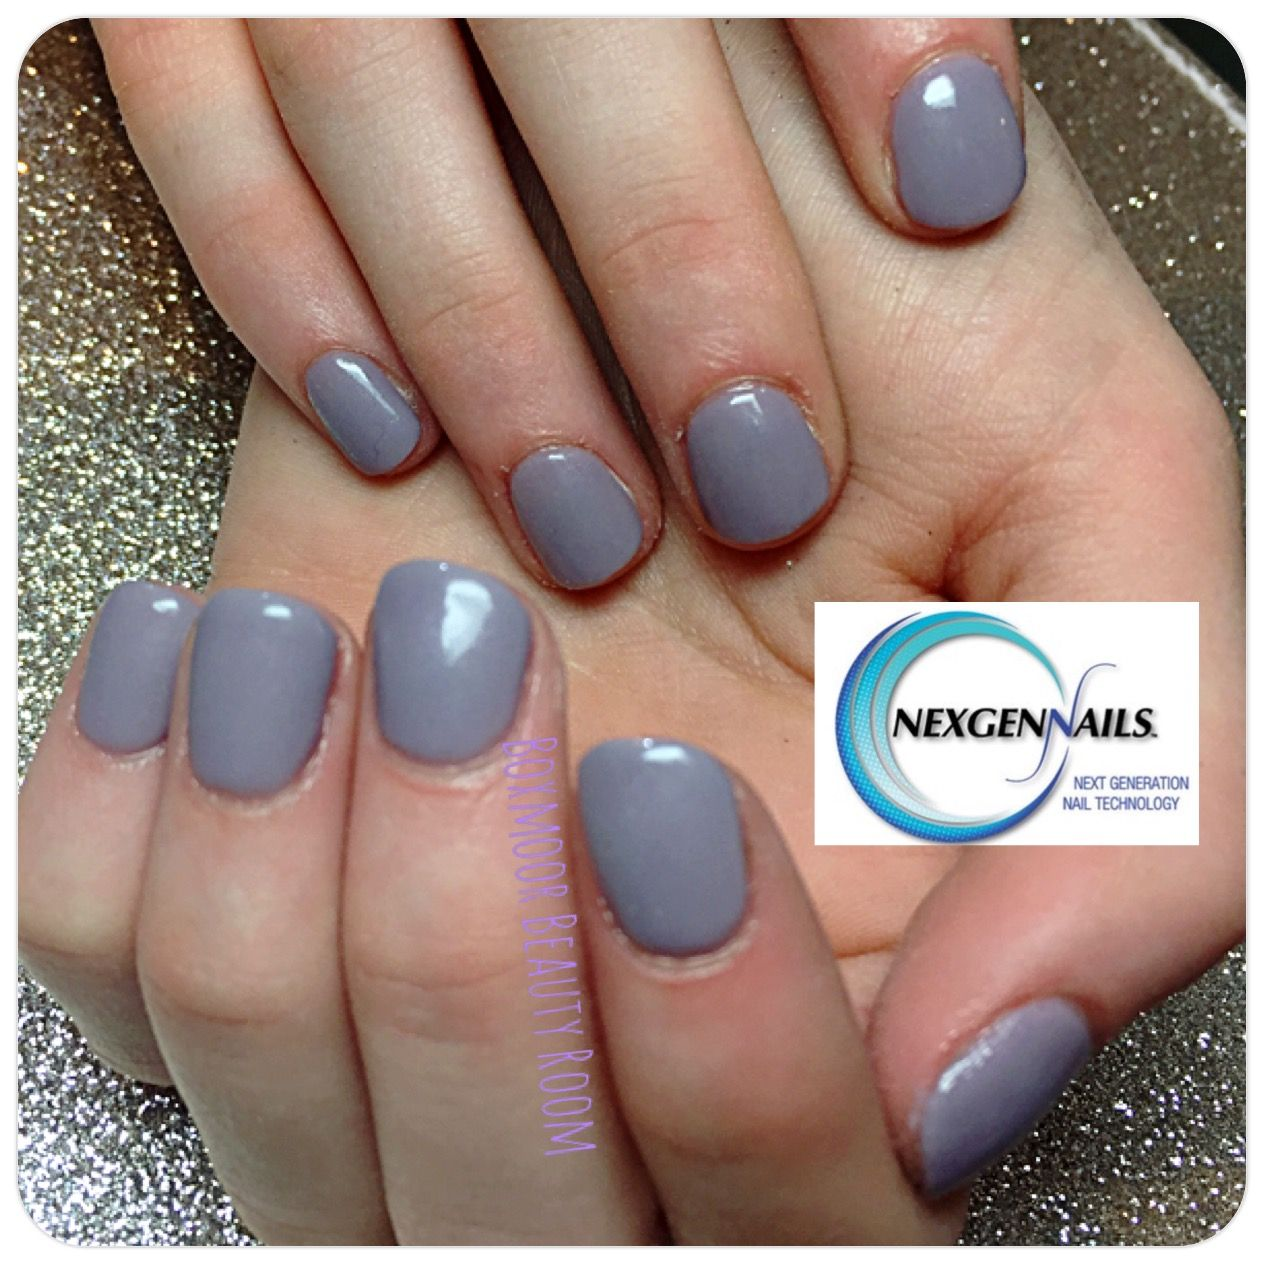 nexgennails #nexgen #powdernails #dippingpowder #dipnails #nails ...